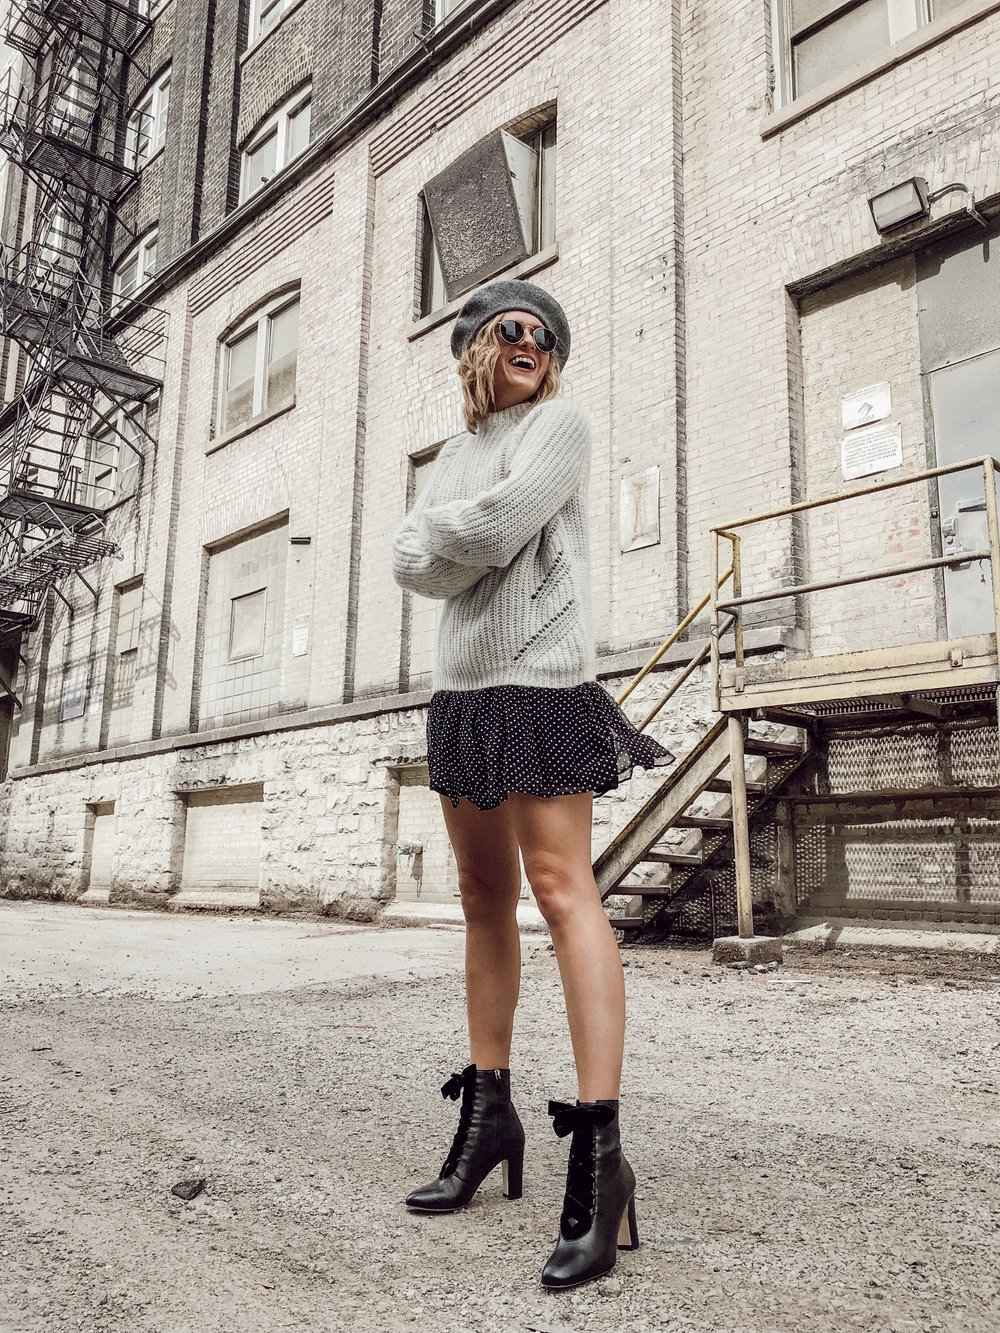 ced8cc6a1ff I styled 3 different Fall looks all accessorized with THIS great beret by  Hat Attack to give ya ll some Fall outfit inspo and ideas for how to style  your ...